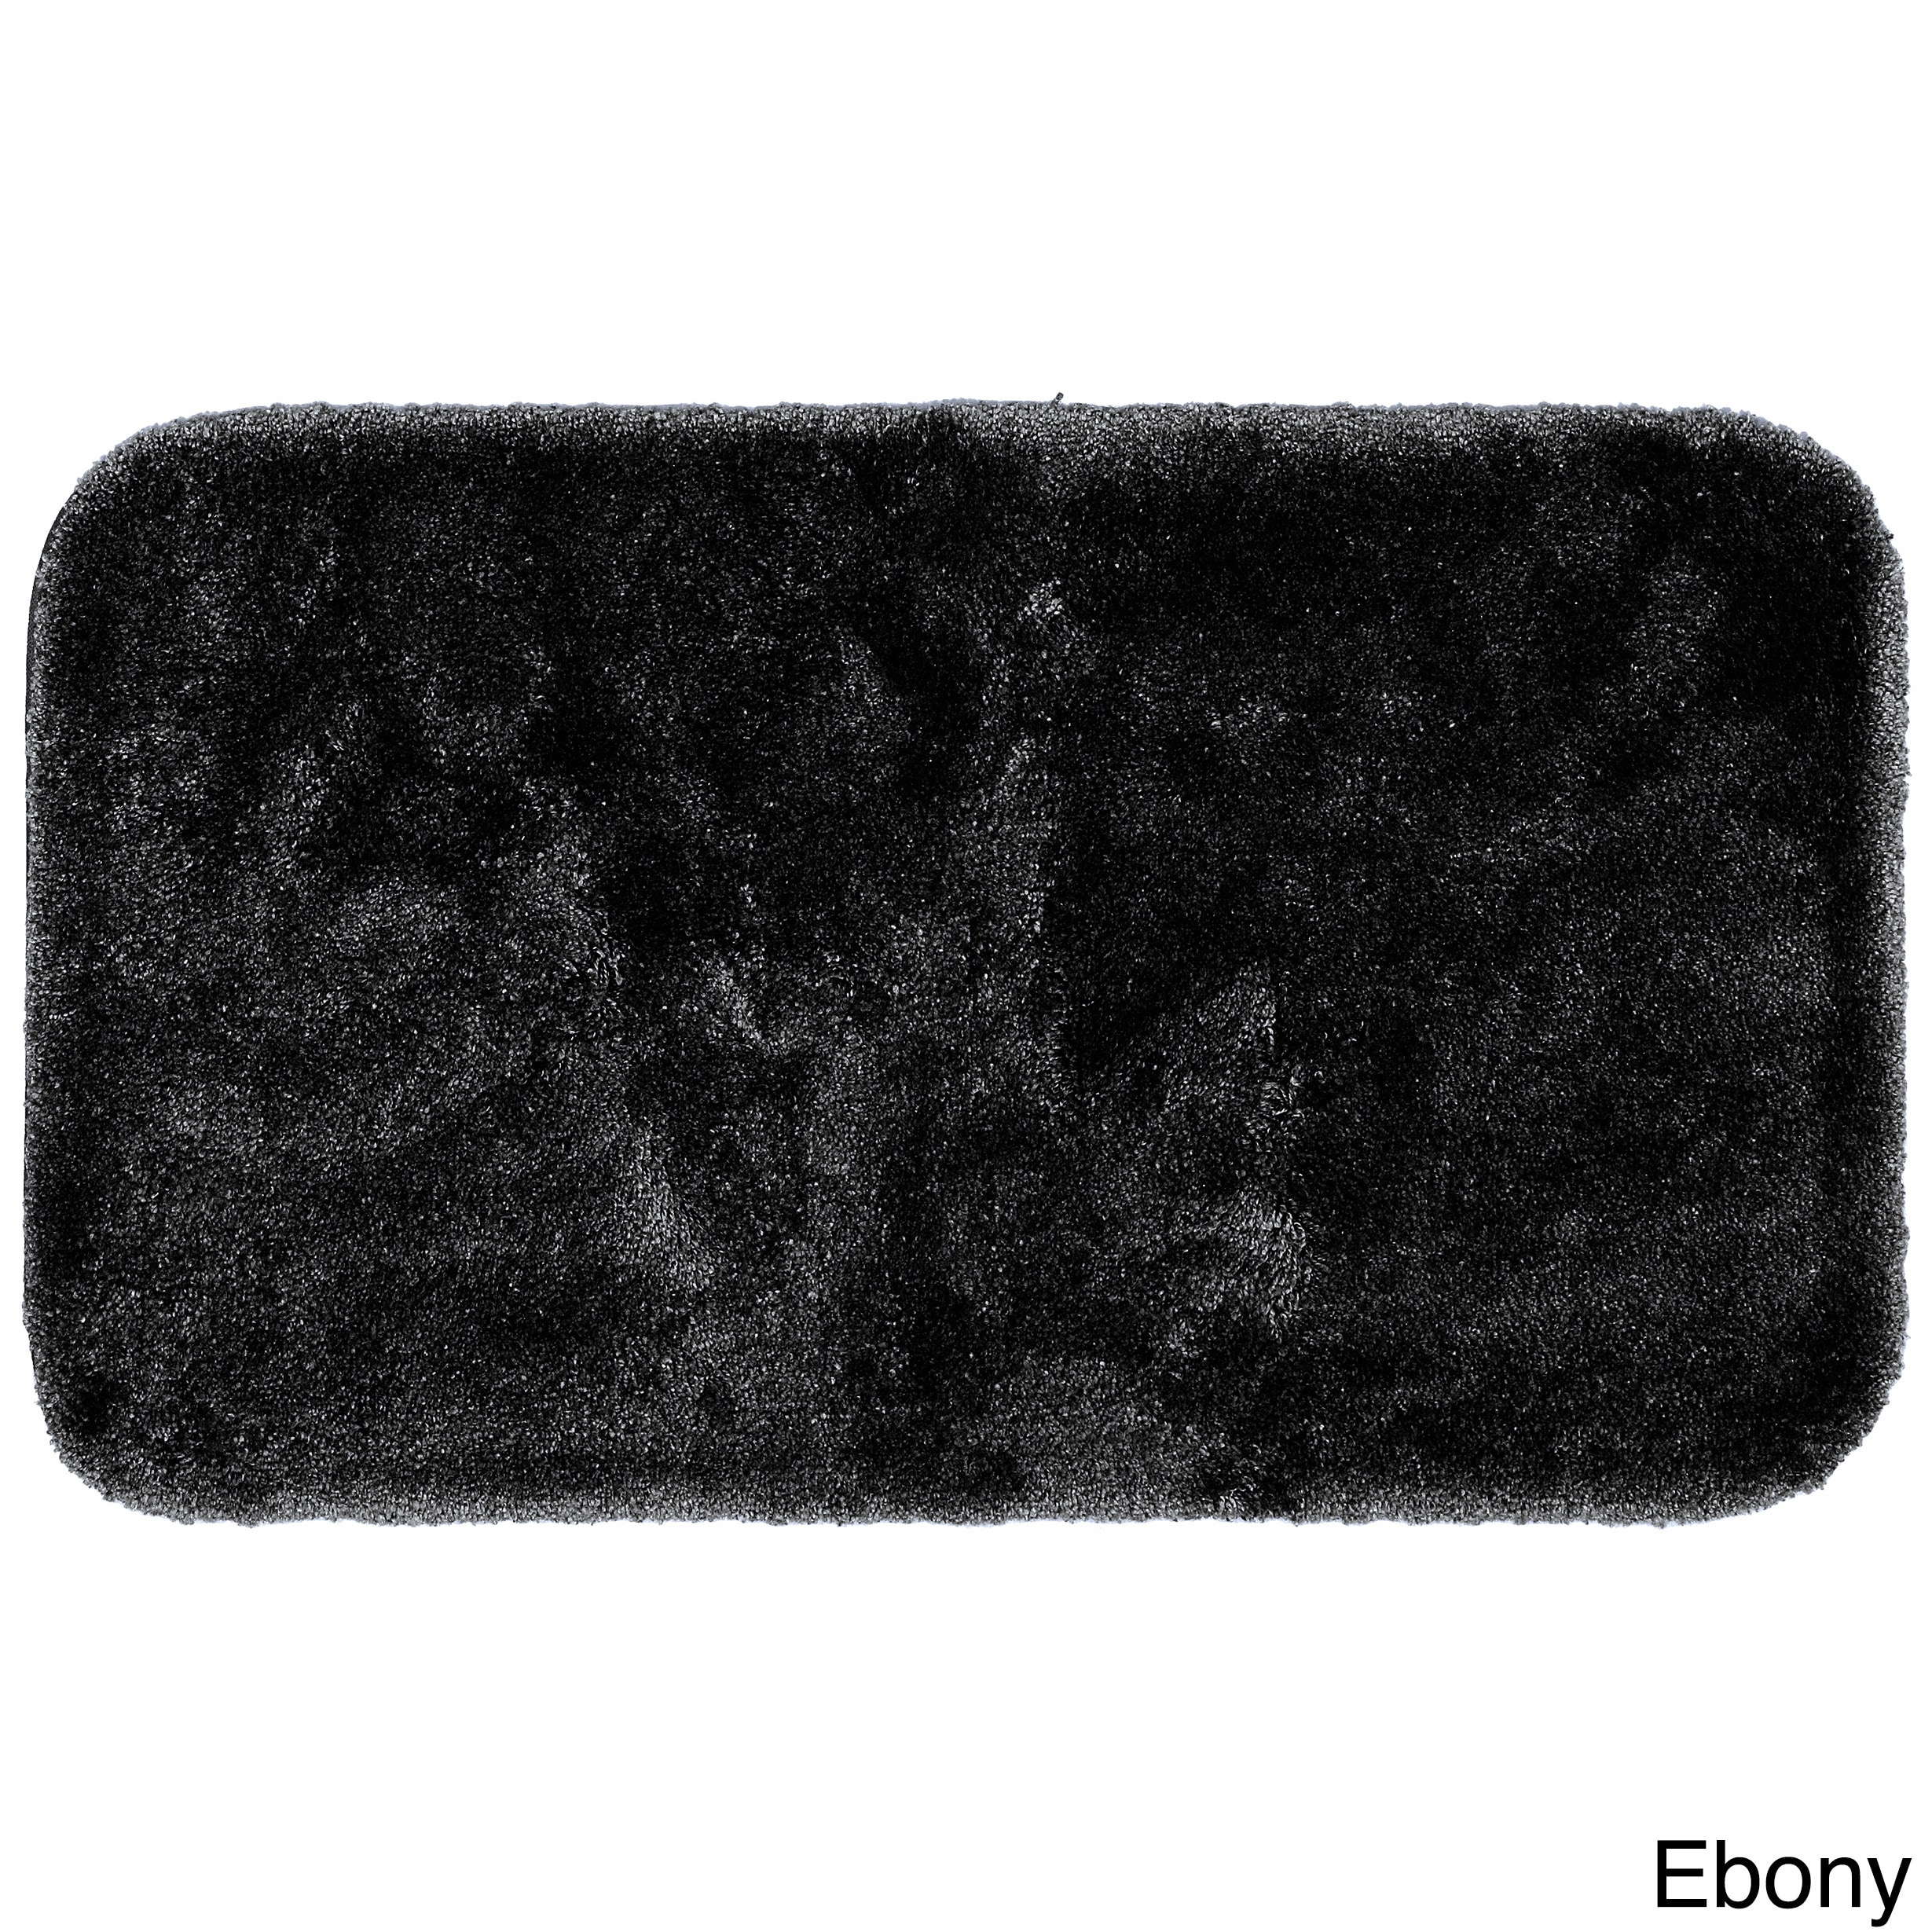 Black Bath Rugs & Bath Mats | Find Great Bath & Towels Deals Shopping at Overstock.com